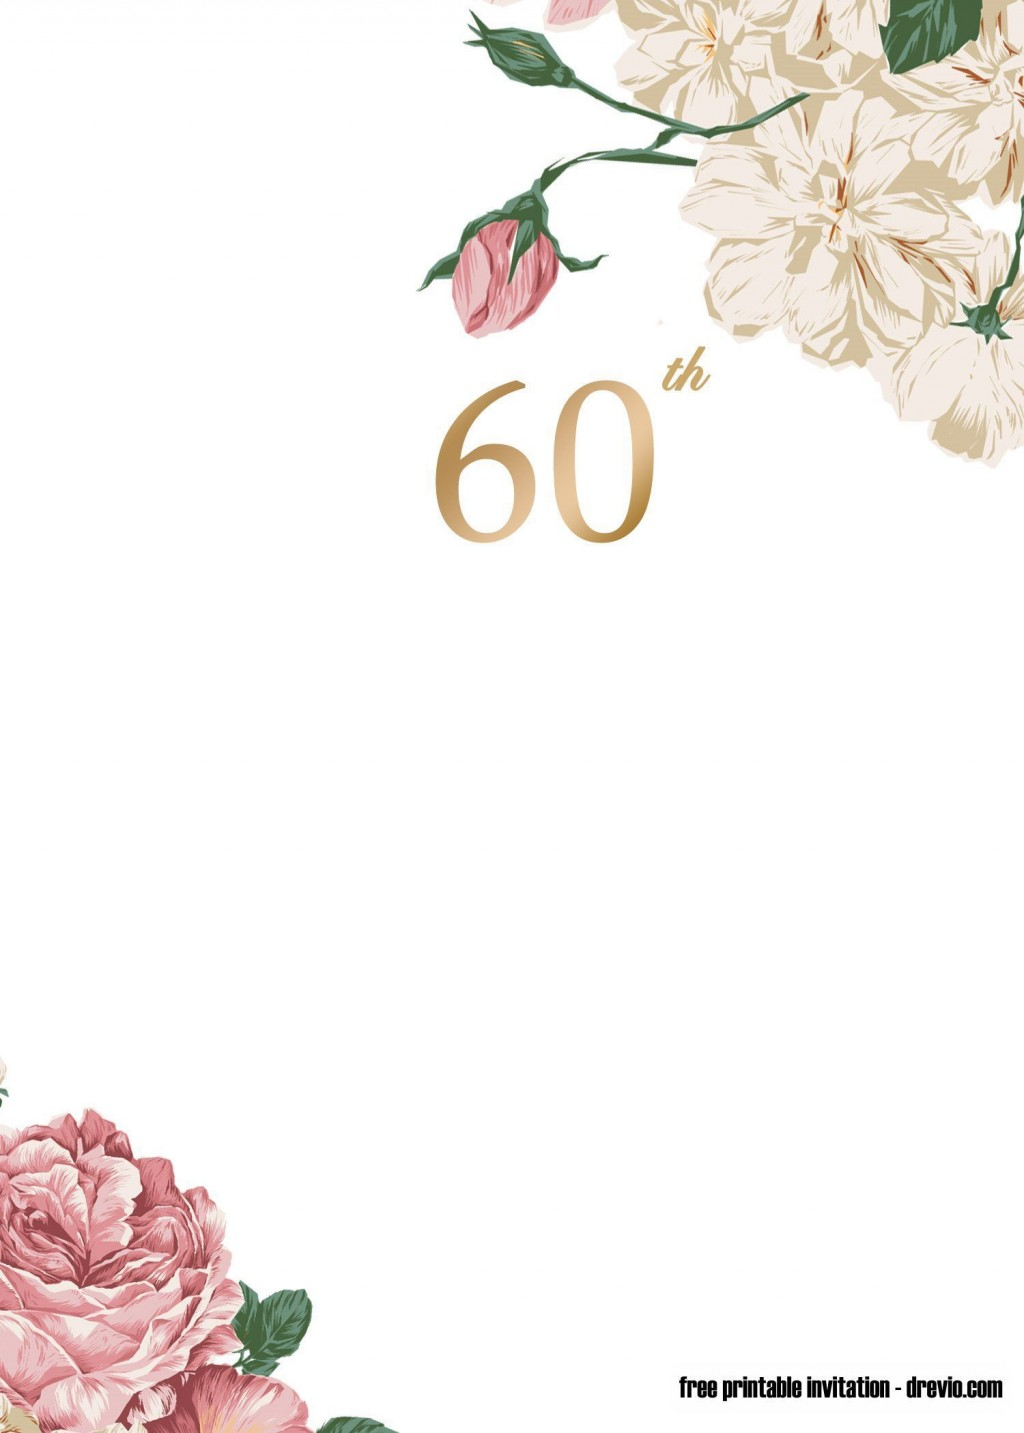 005 Stirring 60th Birthday Invitation Template Sample  Card Free DownloadLarge